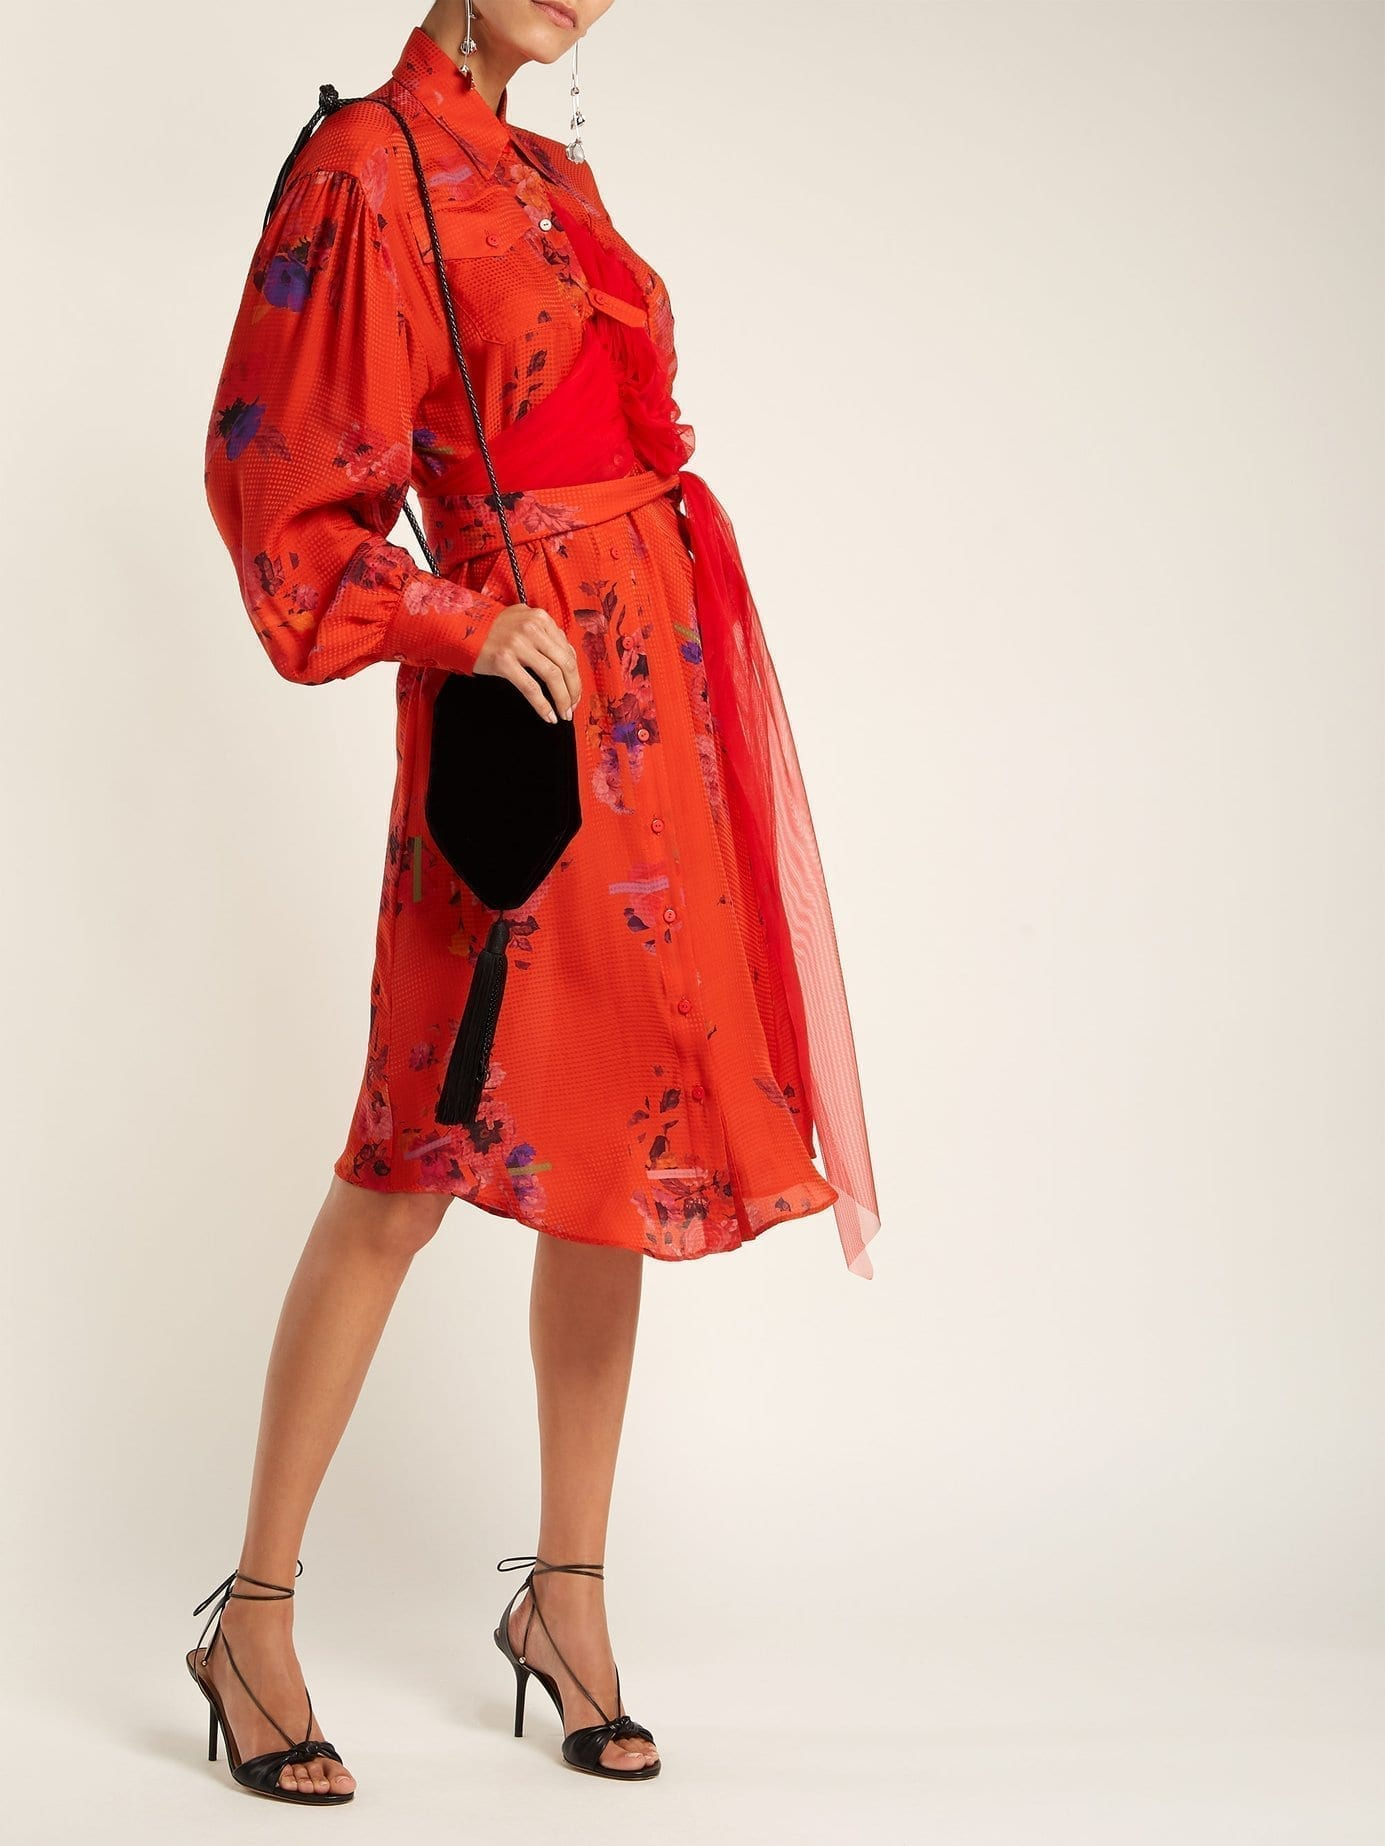 PREEN BY THORNTON BREGAZZI Susanna Silk Shirt Red / Floral Printed Dress